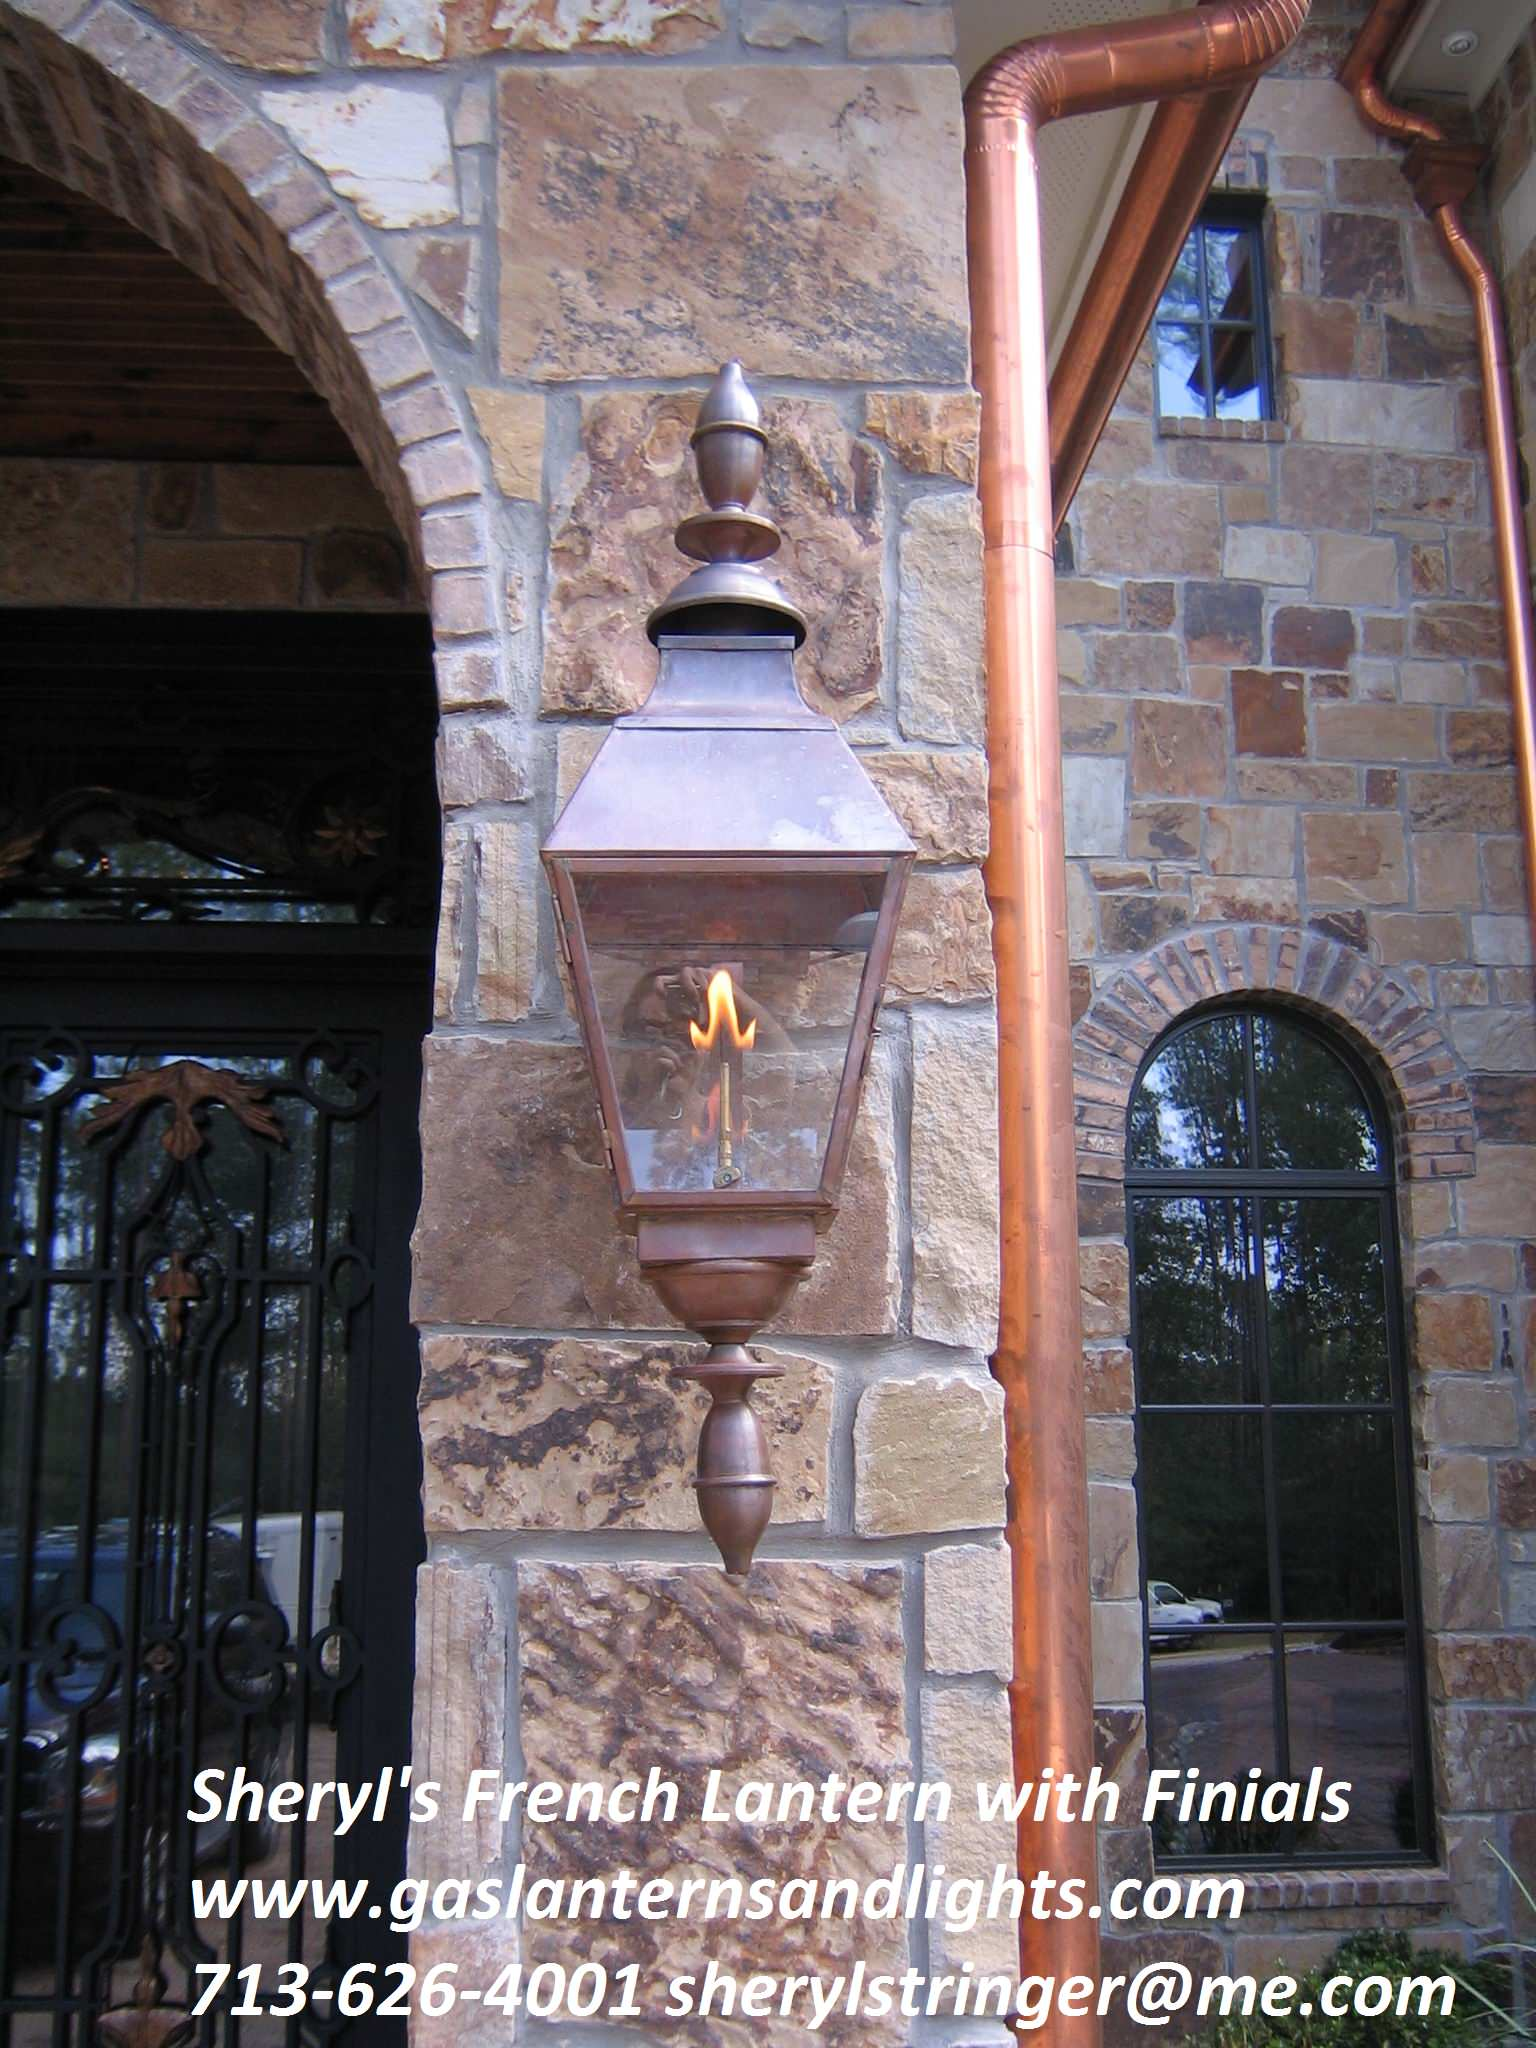 Sheryl's French Gas Lantern with Fnials